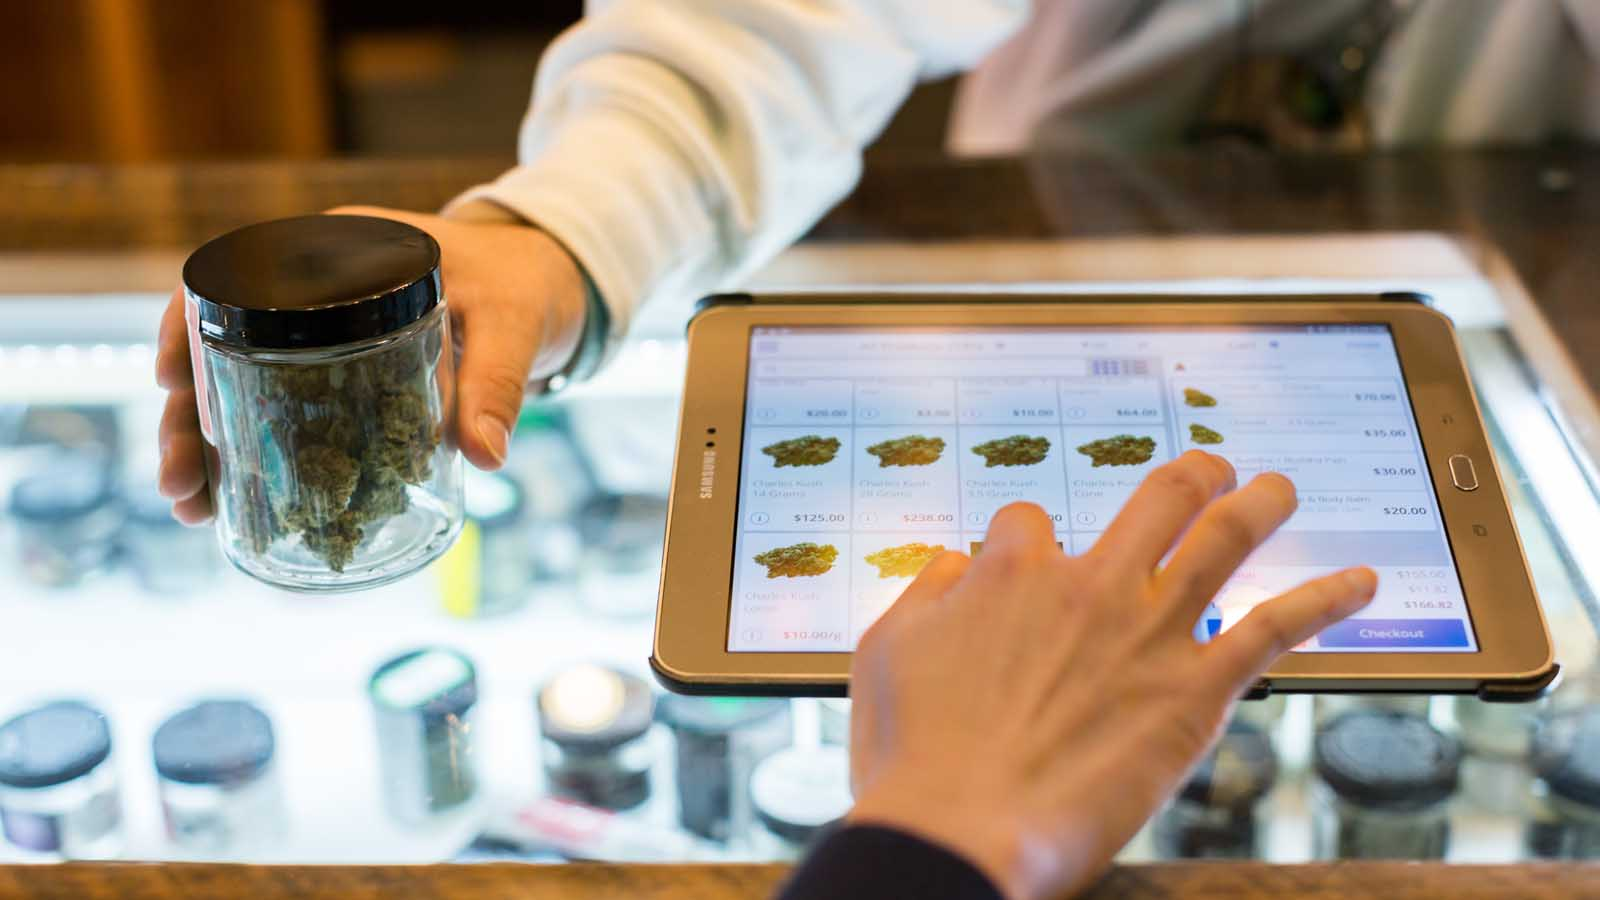 Inventory Management and Sales Tracking System for Saskatchewan Cannabis Retailers